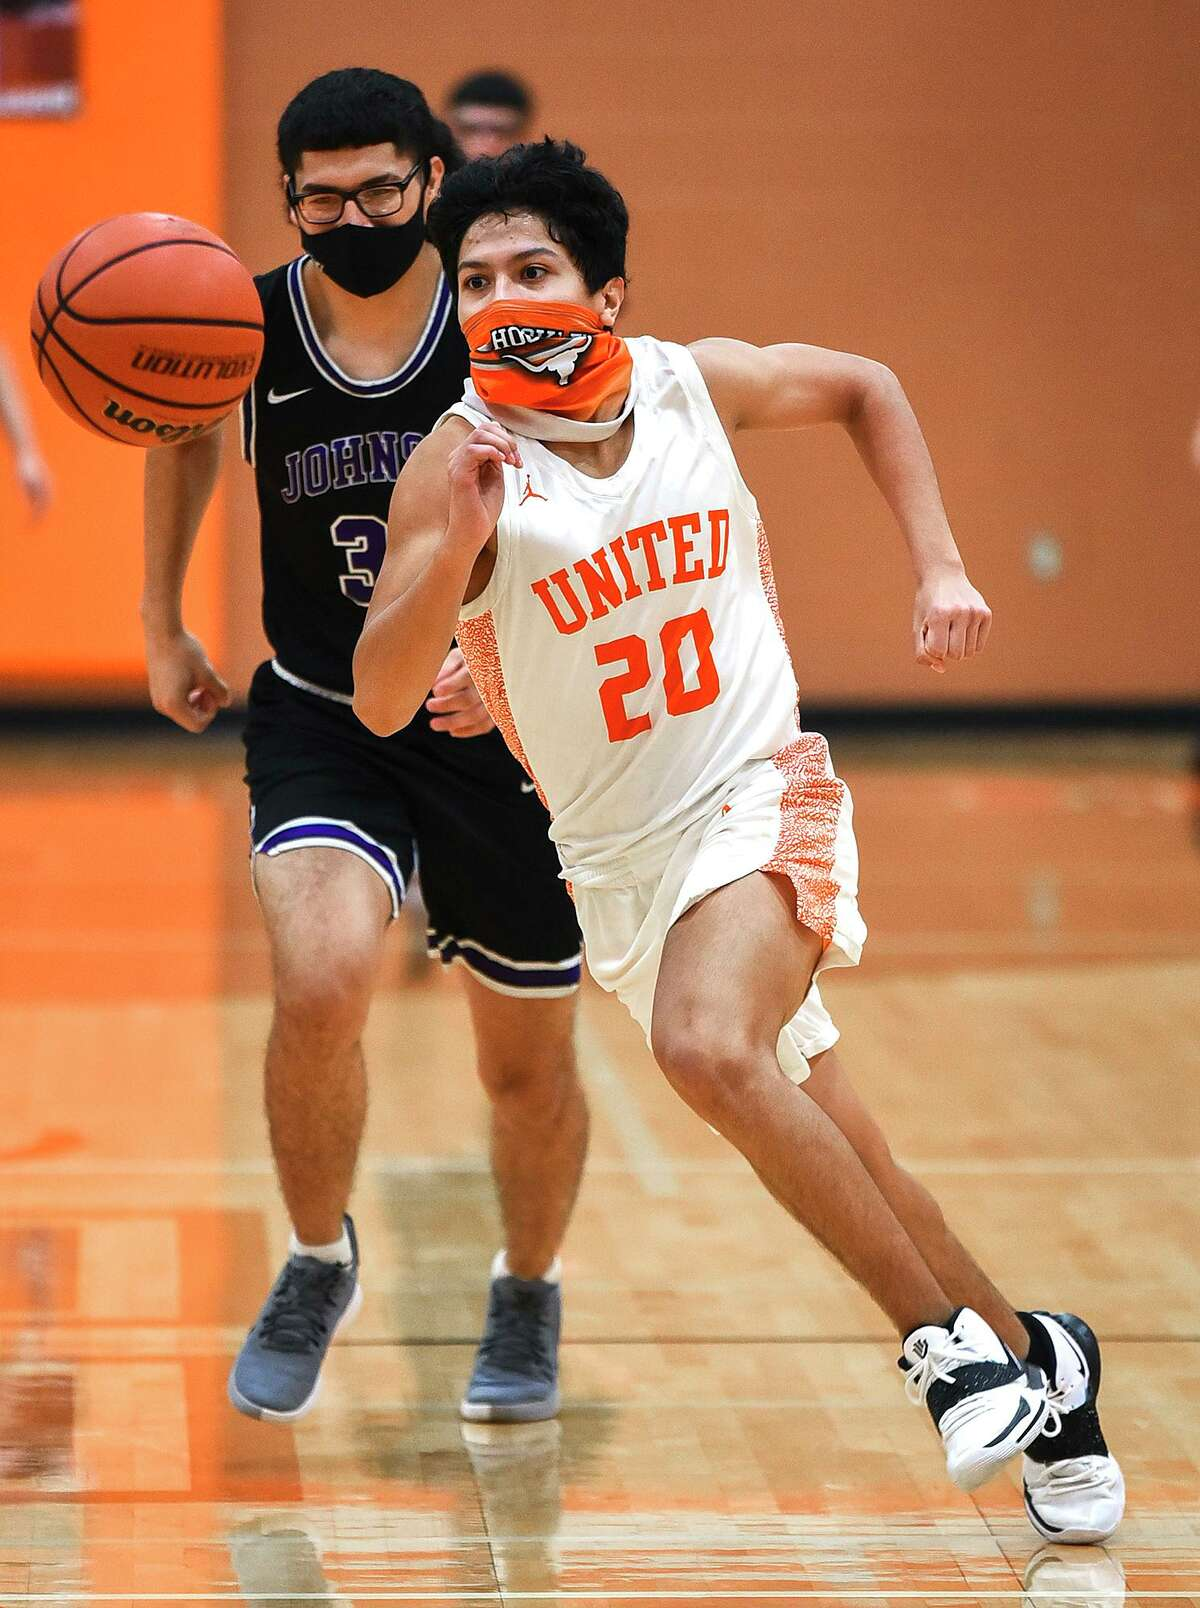 Sebastian Luna scored 22 points Tuesday in United's 82-45 victory at home over LBJ.